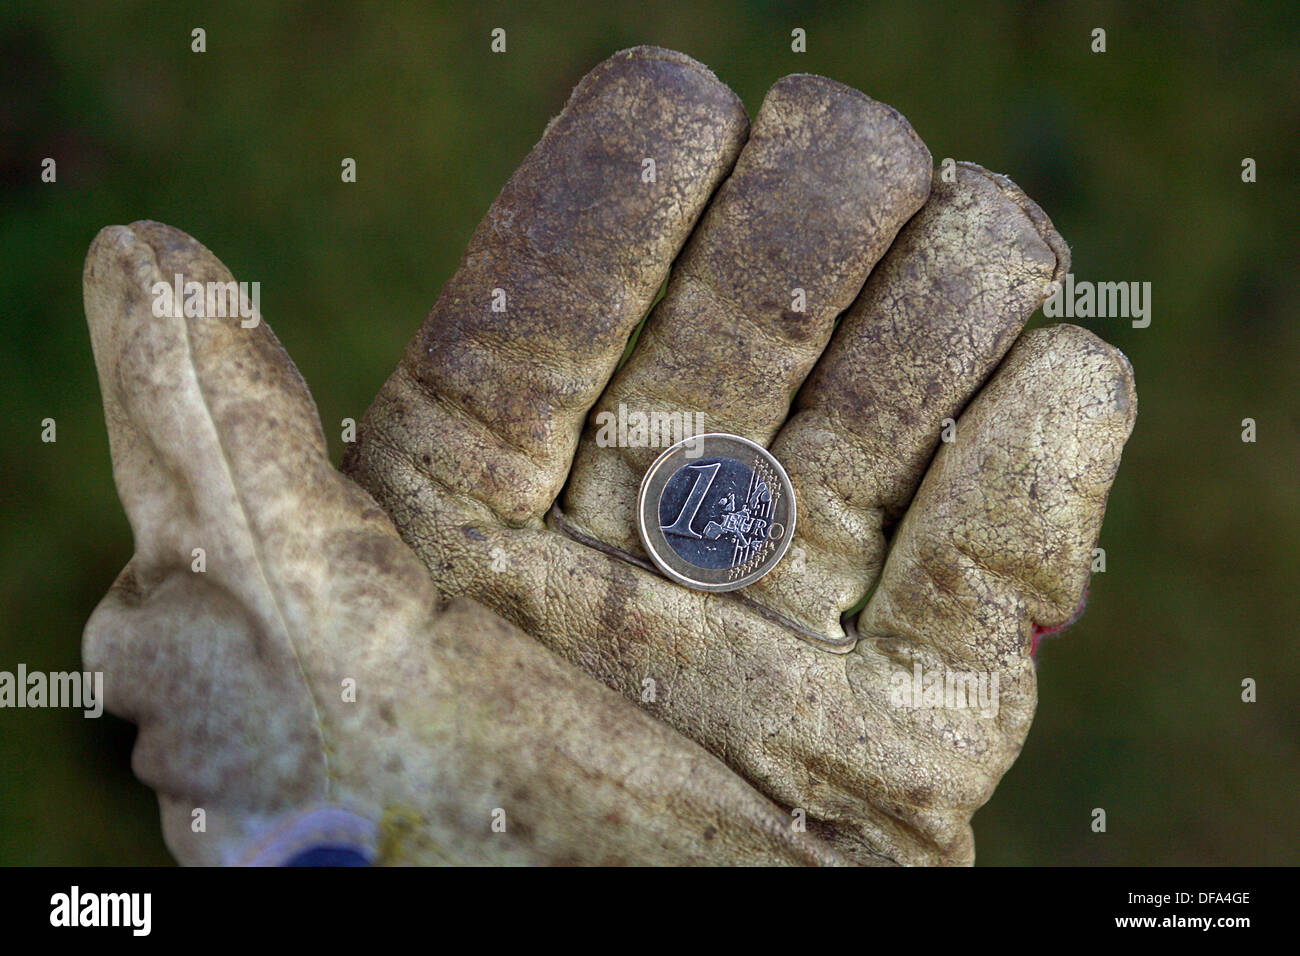 A hand in a work glove is holding a one-euro coin (05 December 2006). Photo: Karl-Josef Hildenbrand dpa/lby +++(c) Stock Photo